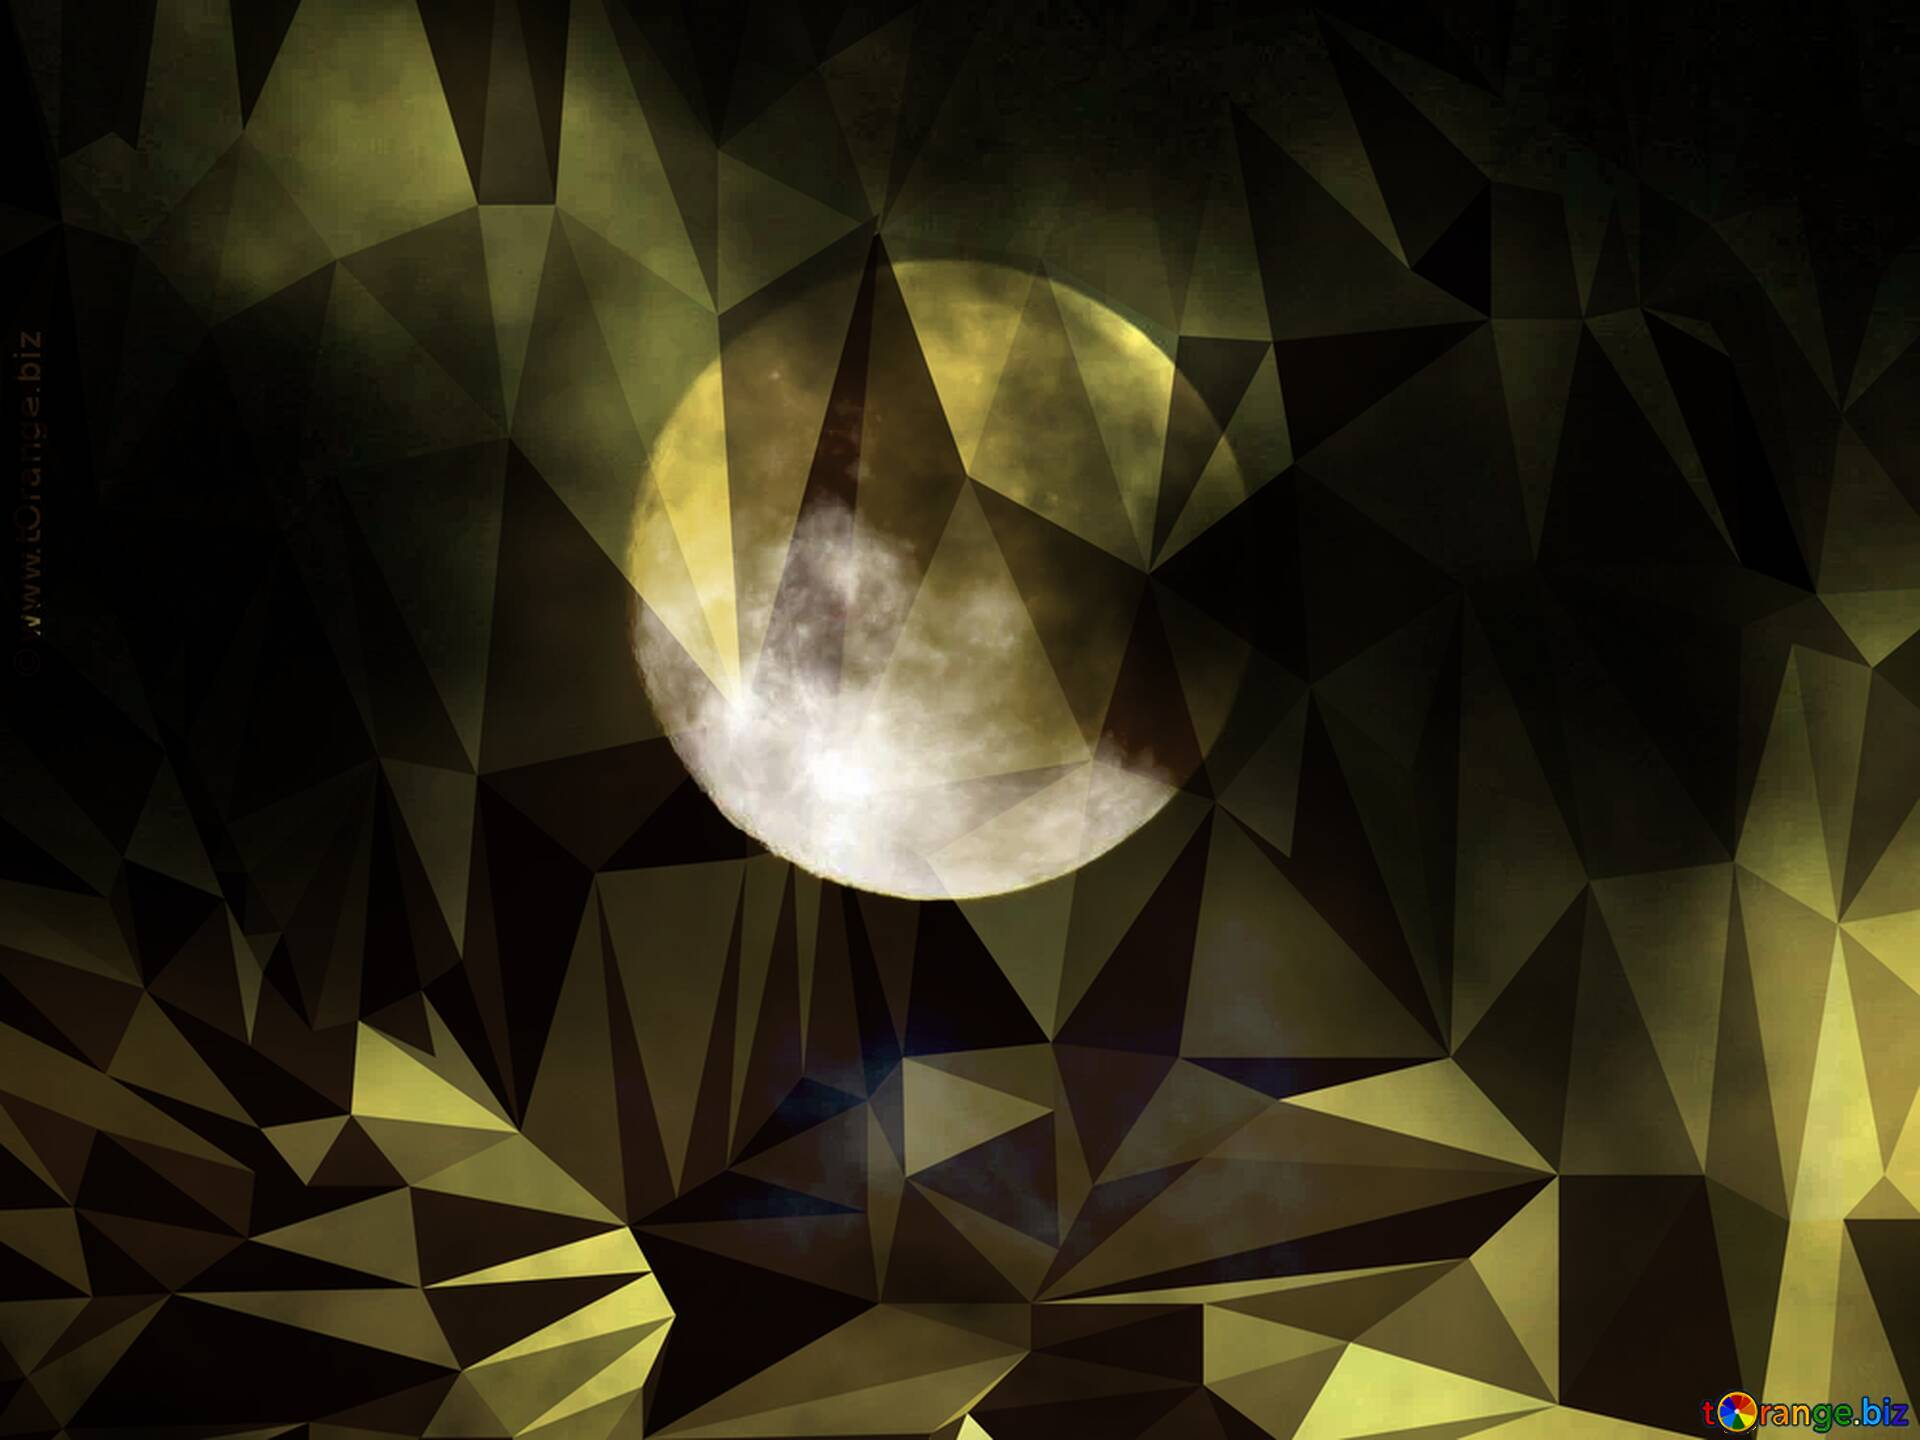 Download Free Picture Moon Wallpapers Polygon Background With Triangles On Cc By License Free Image Stock Torange Biz Fx 200678